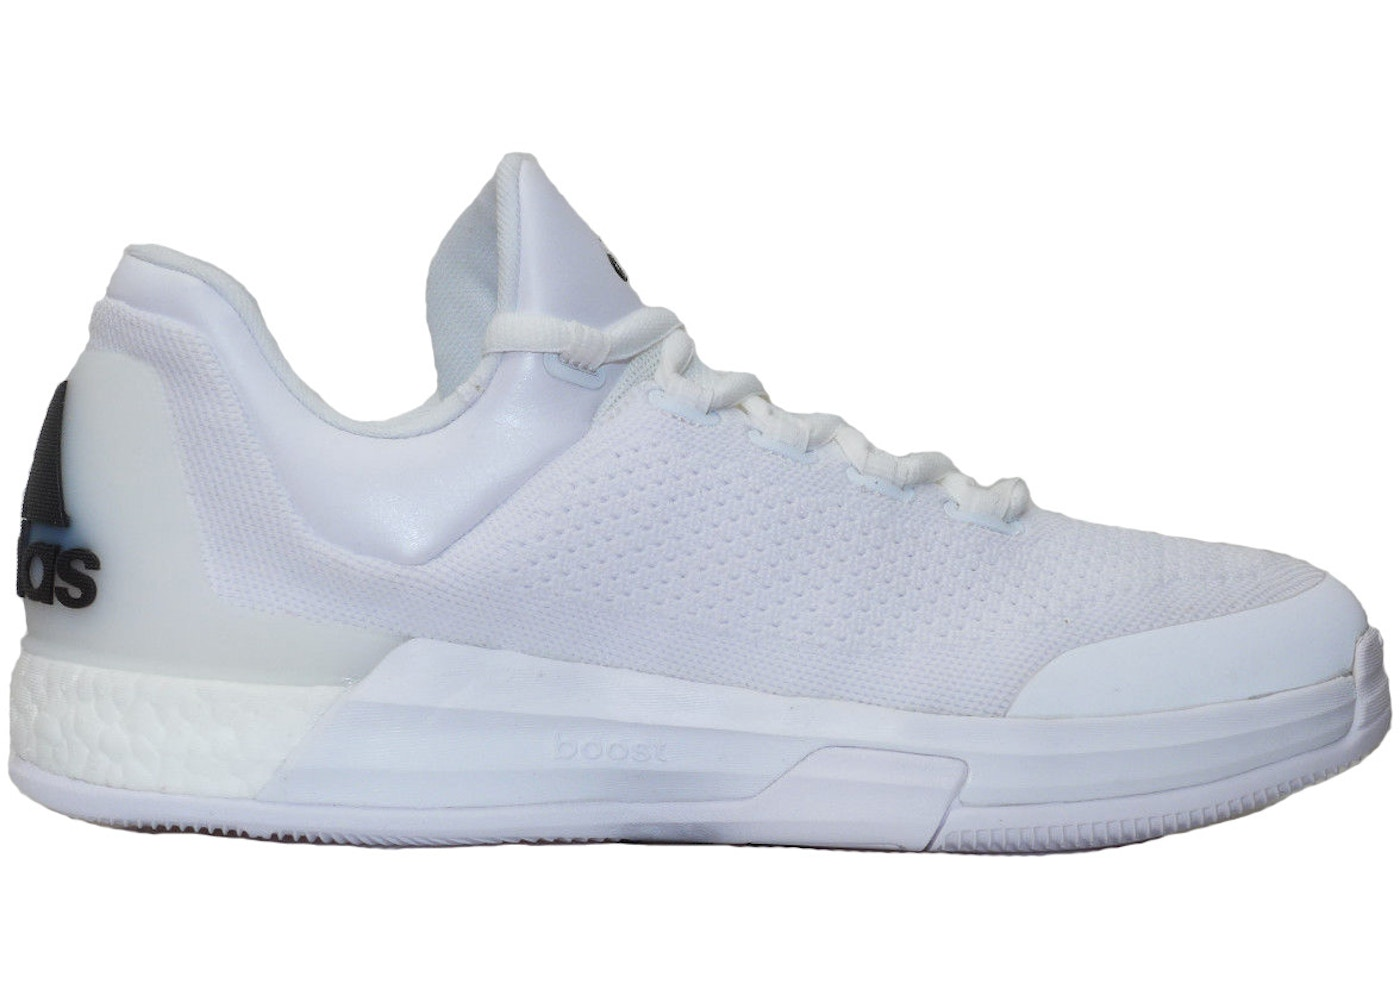 best sneakers 5898b 2718f adidas Crazylight Boost Triple White James Harden - AH1264